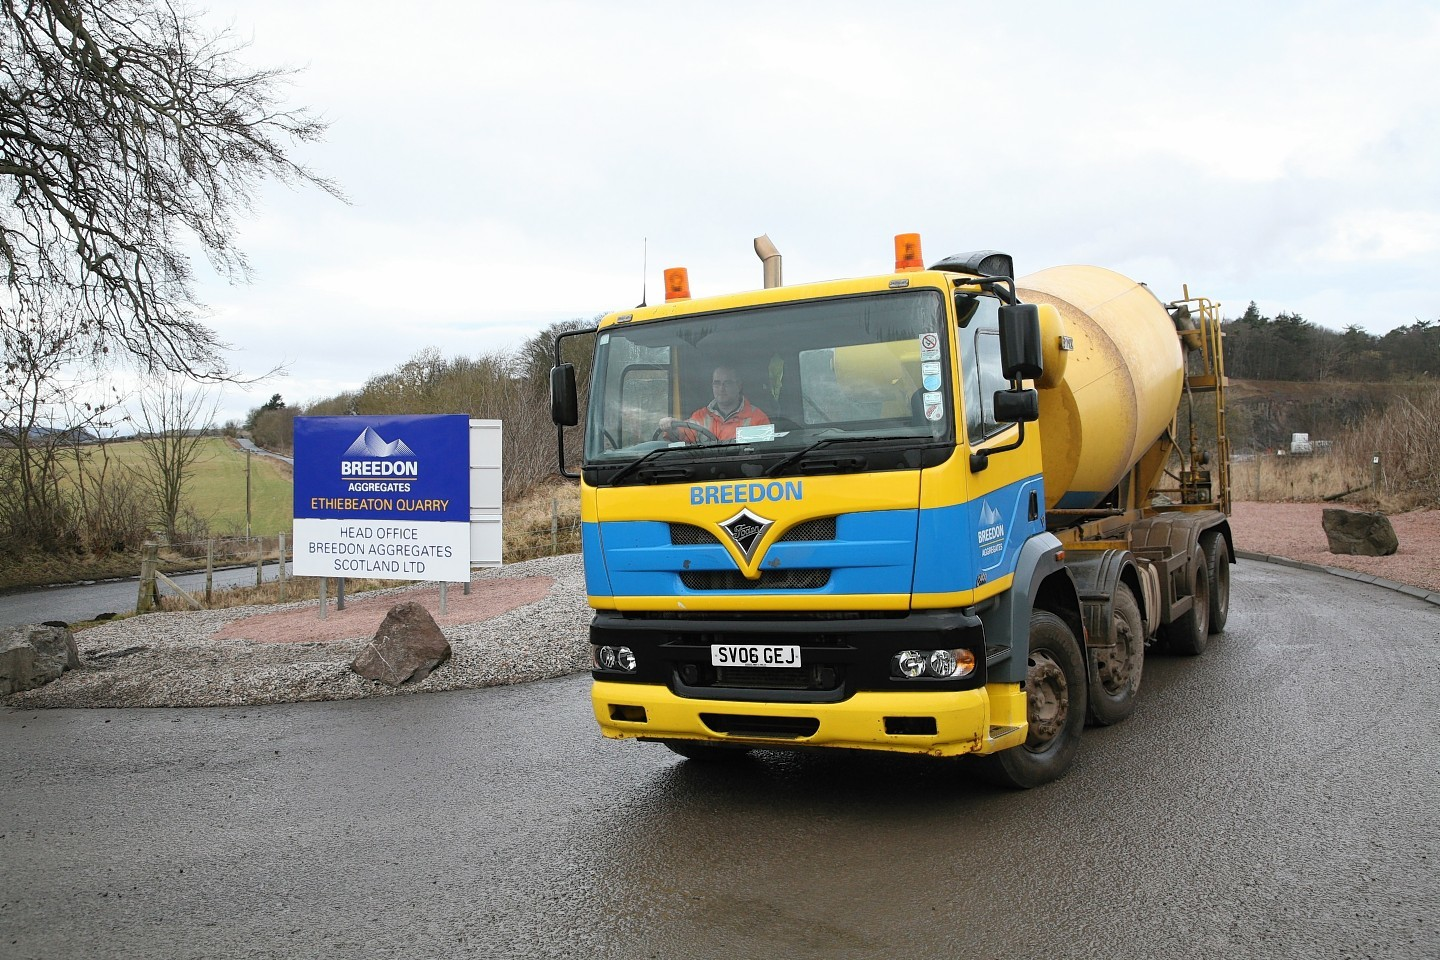 Breedon Aggregates has won a contract to supply materials for the A9 dualling.